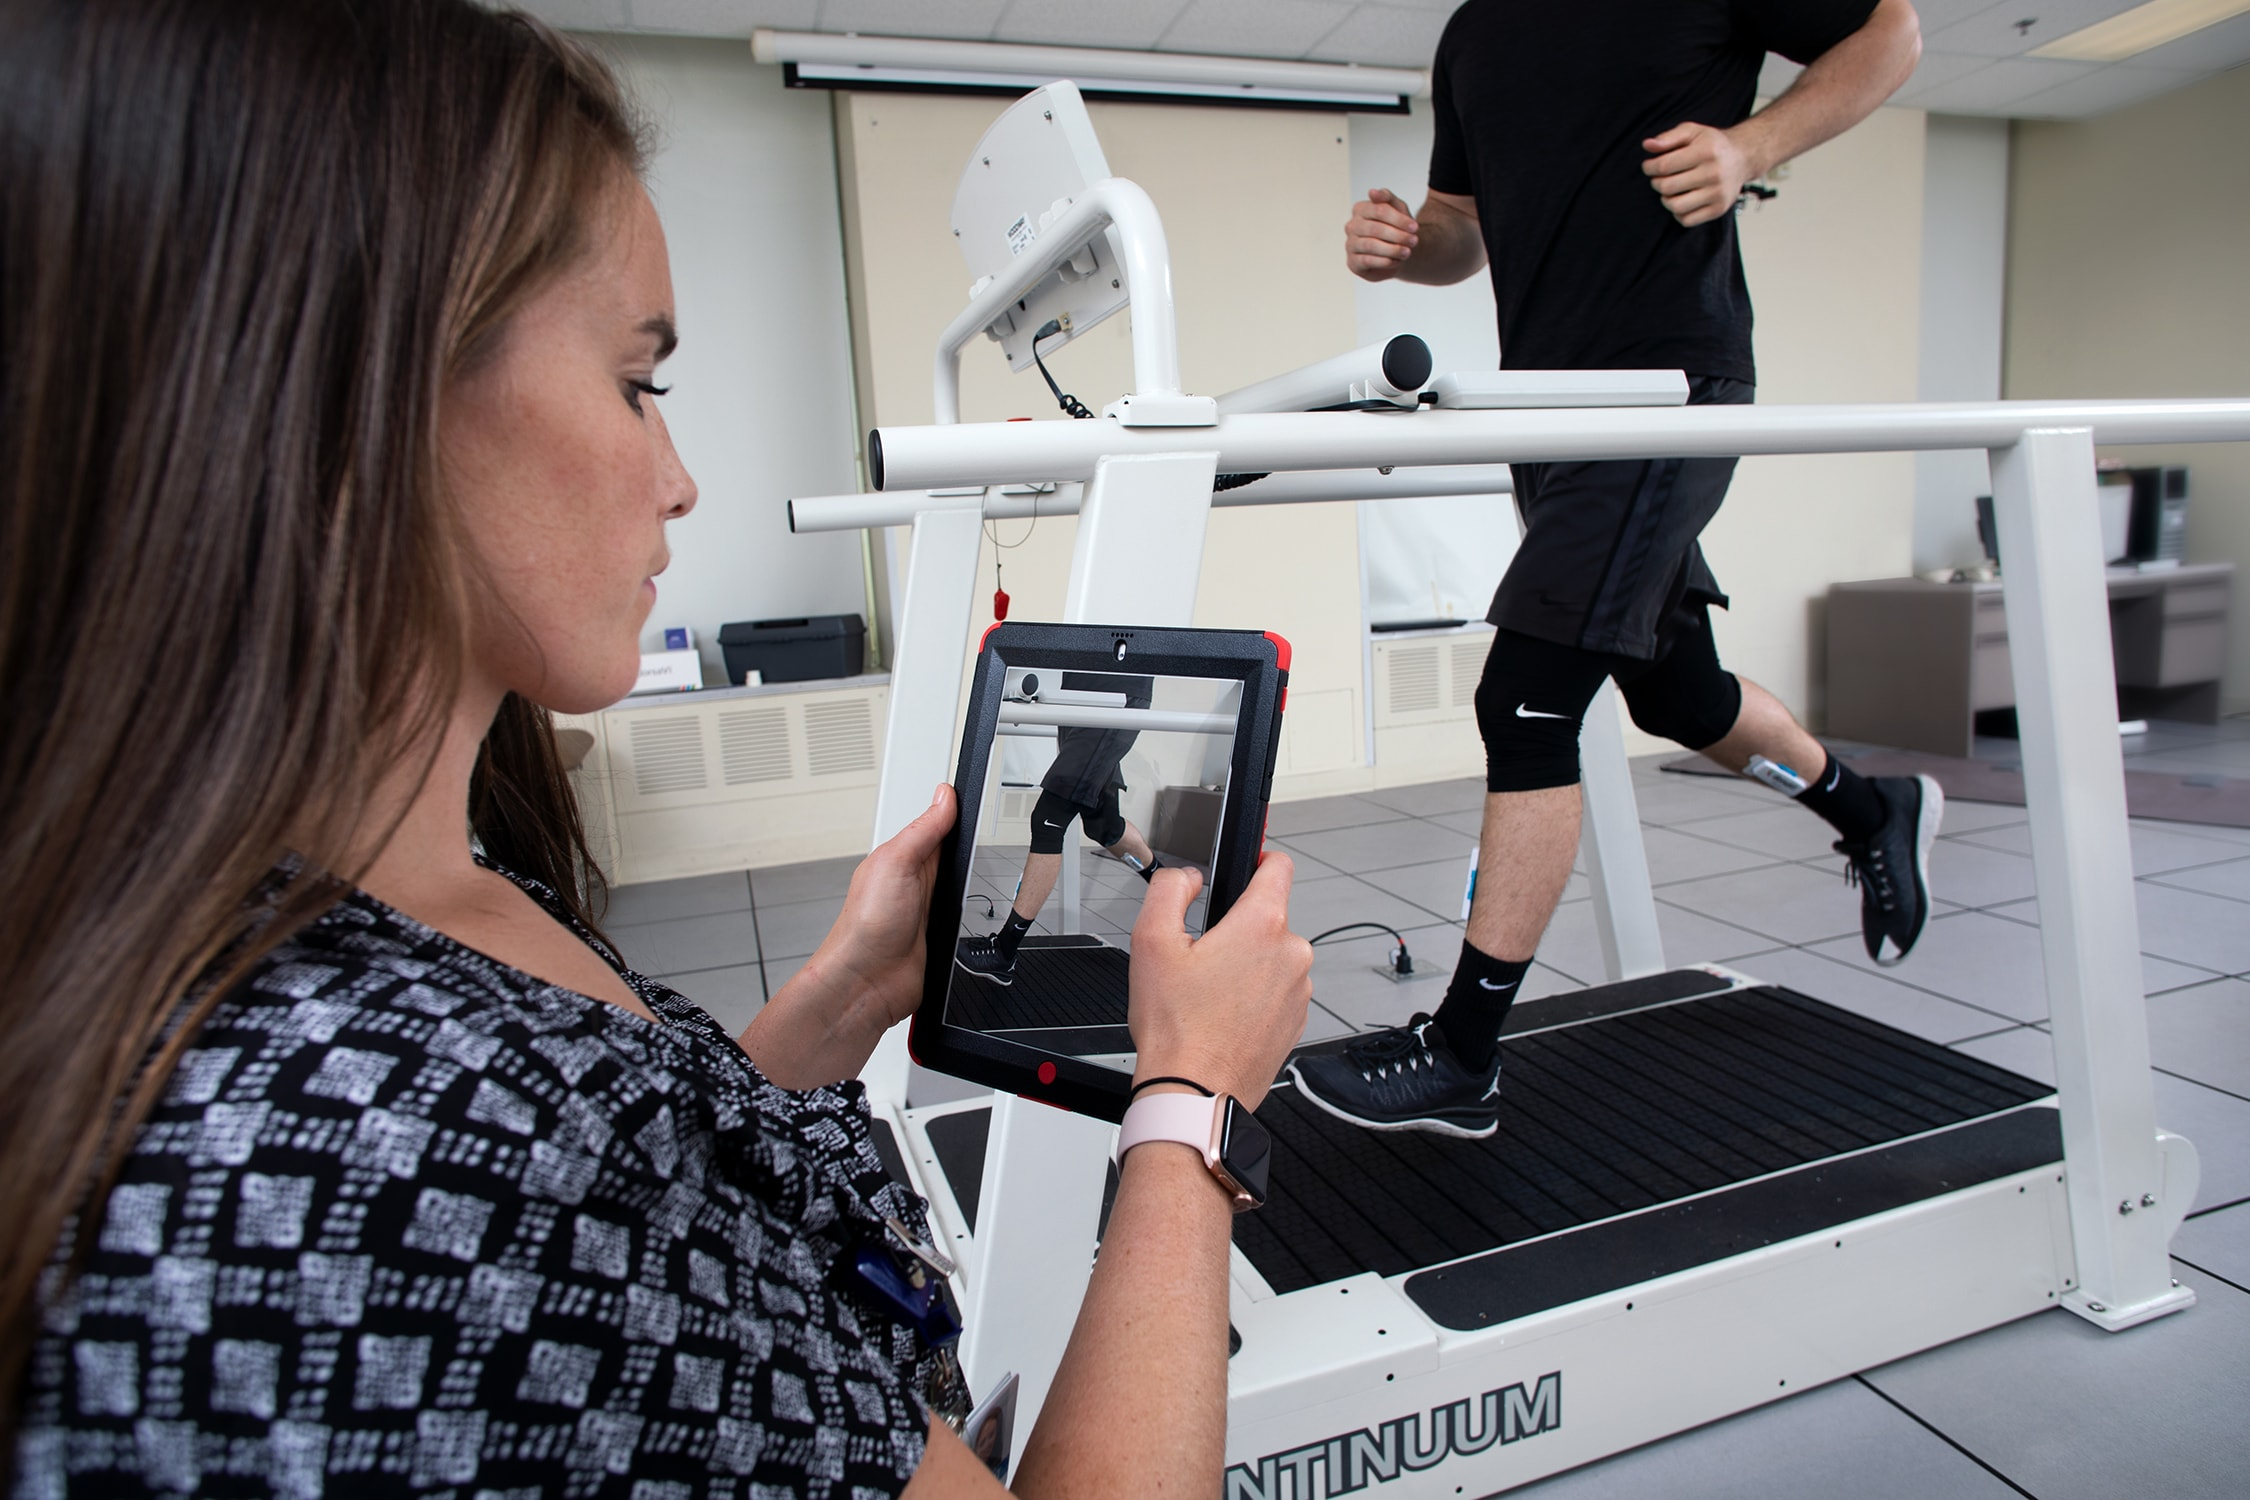 A man running on a treadmill while having a woman perform video gait analysis